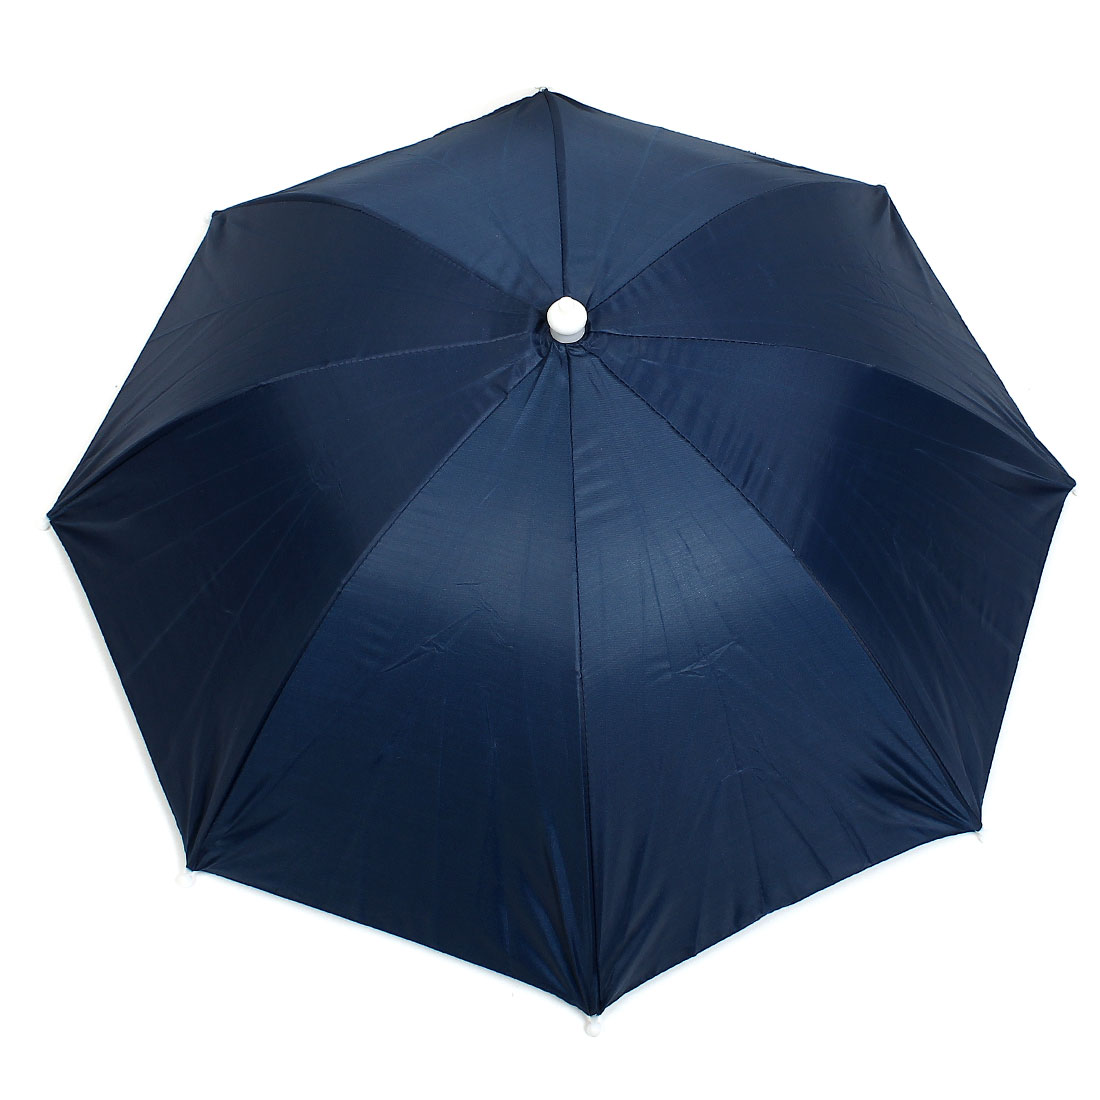 Outdoor Fishing Headwear Polyester Canopy Umbrella Hat Cap Dark Blue